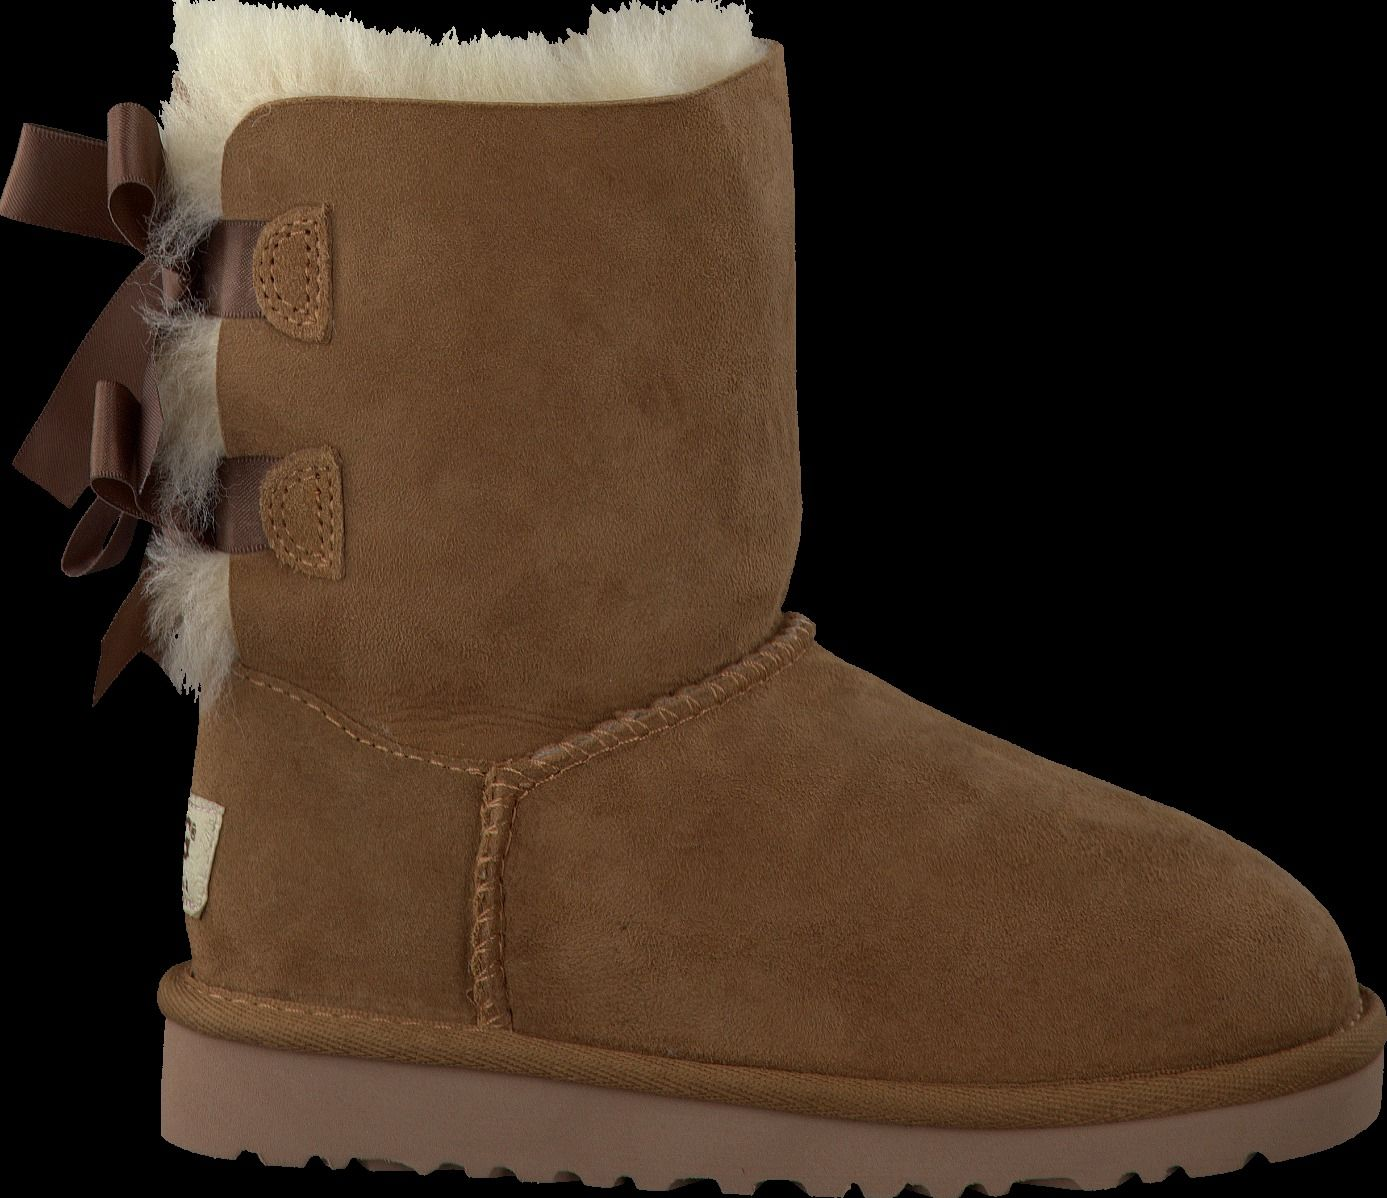 chaussure femme ugg ouverte